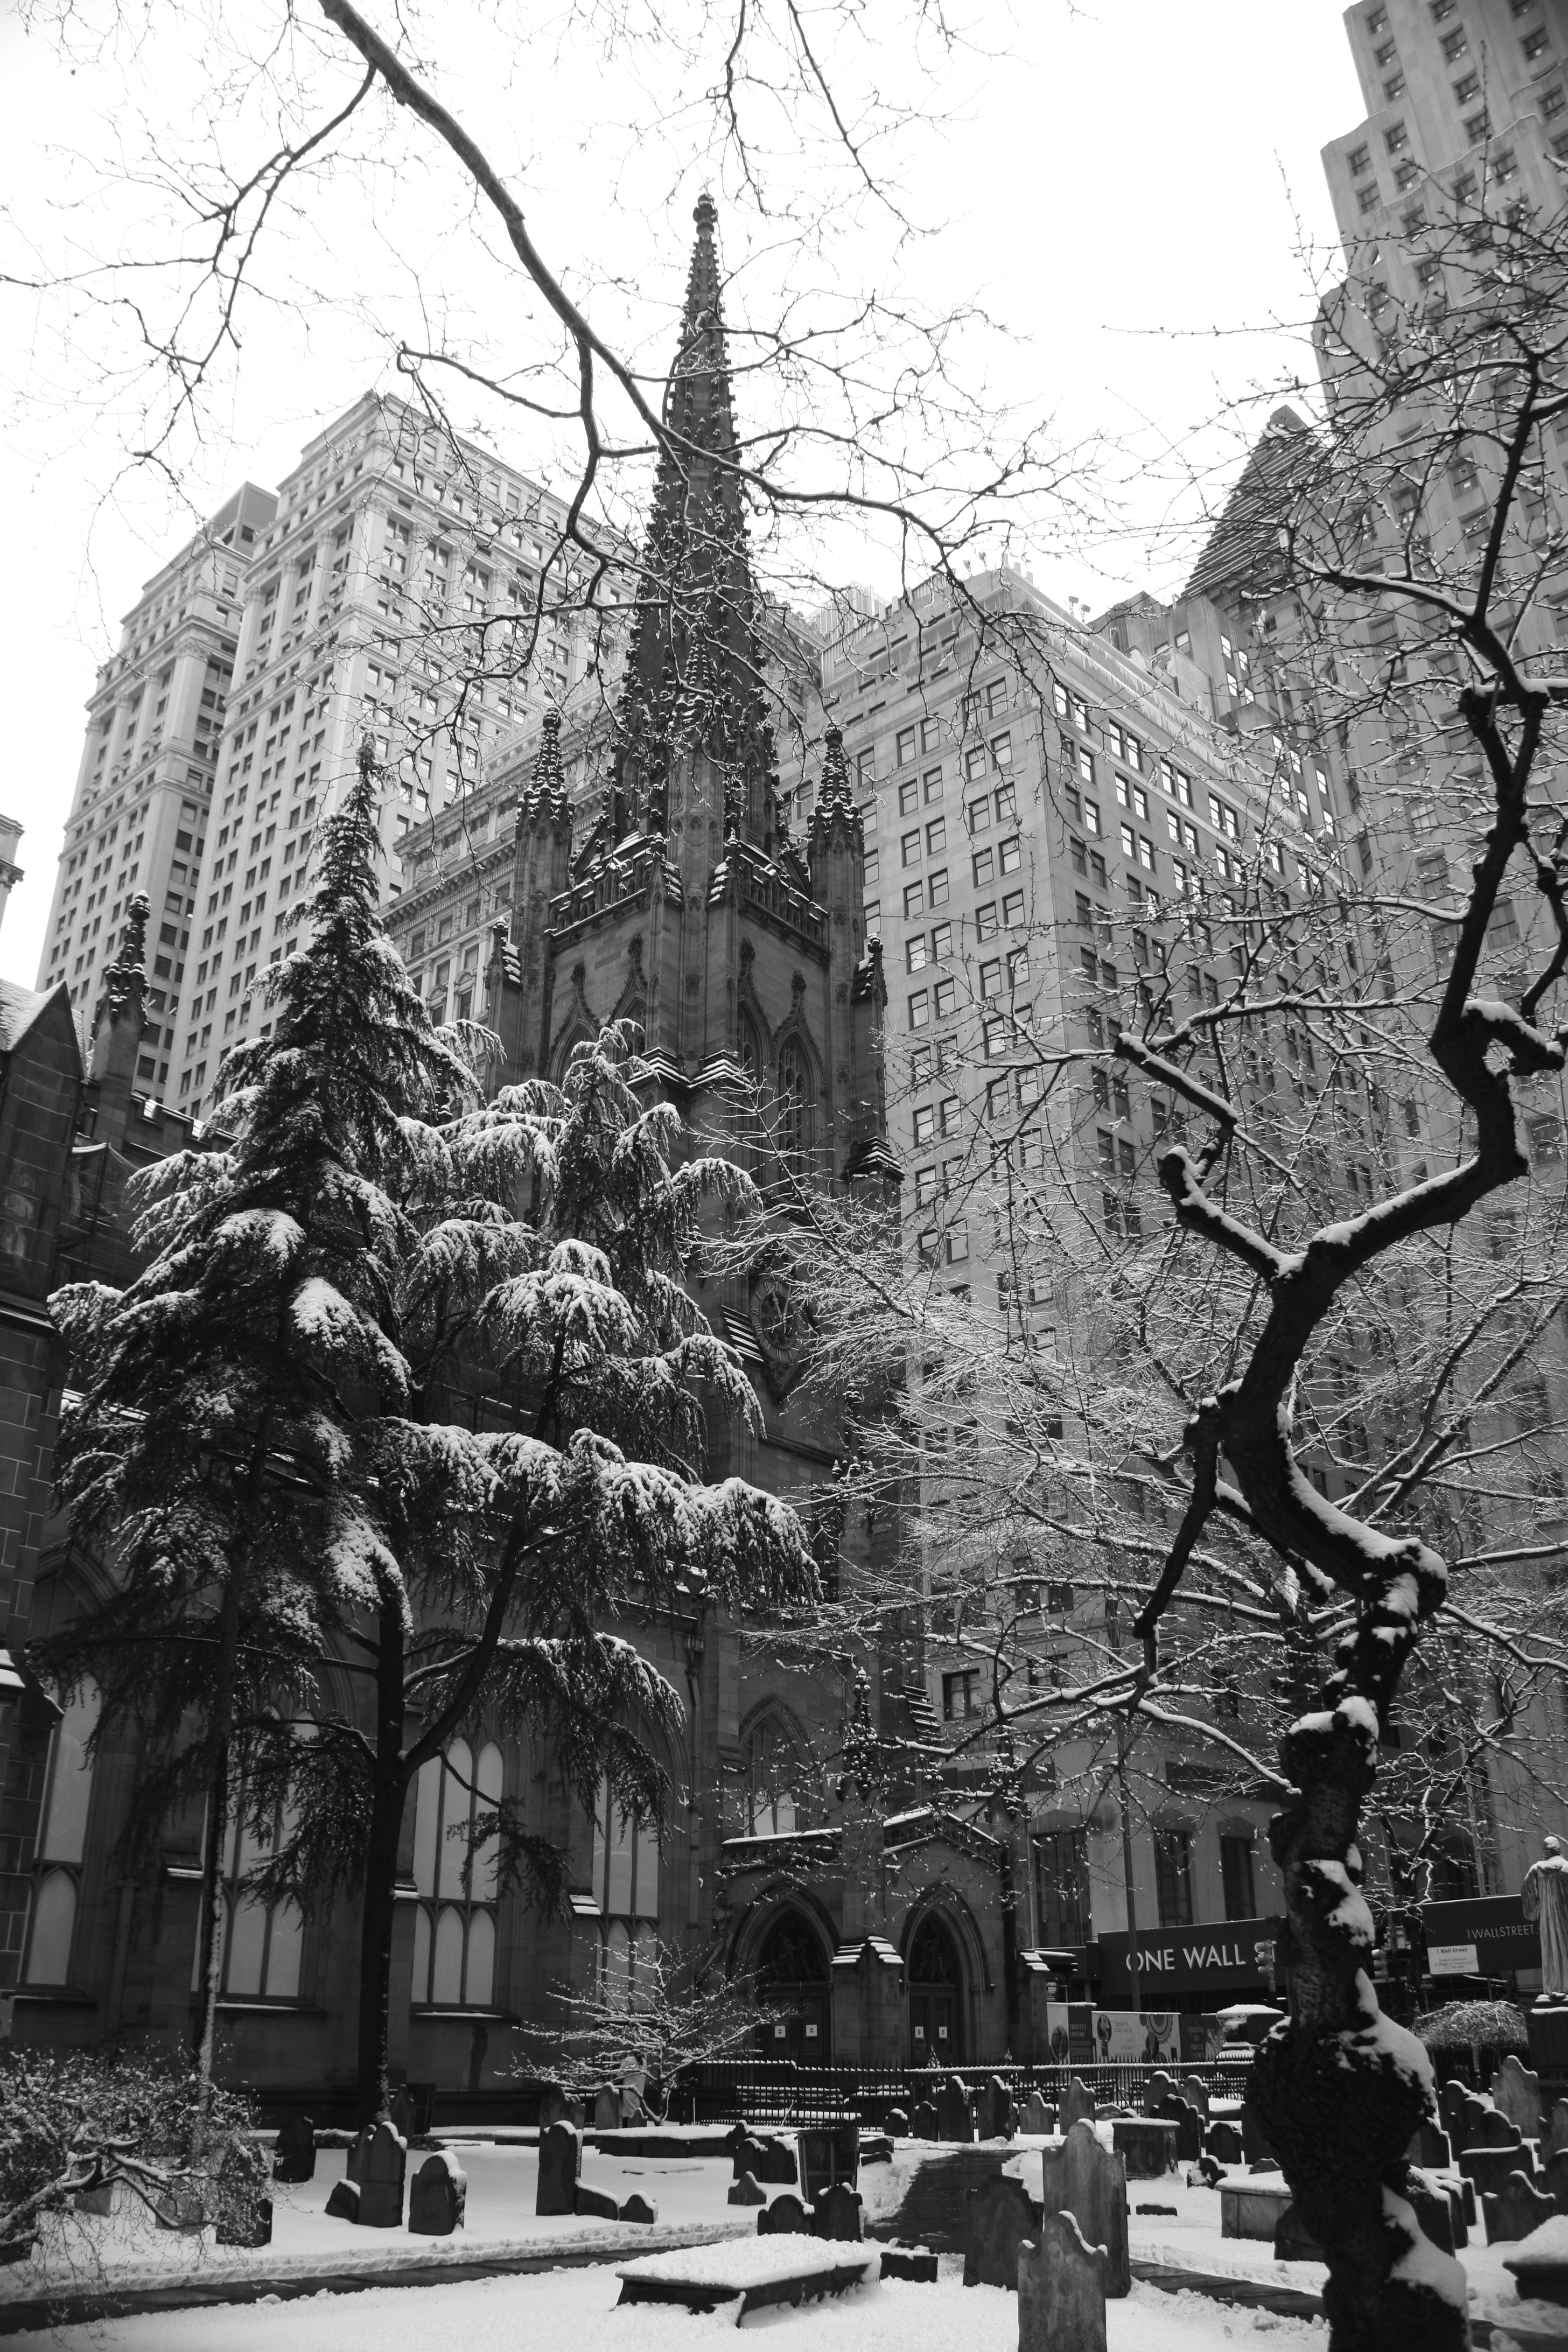 A black and white photo of Trinity Church in New York City. Snow covers the roof and the surrounding tombstones